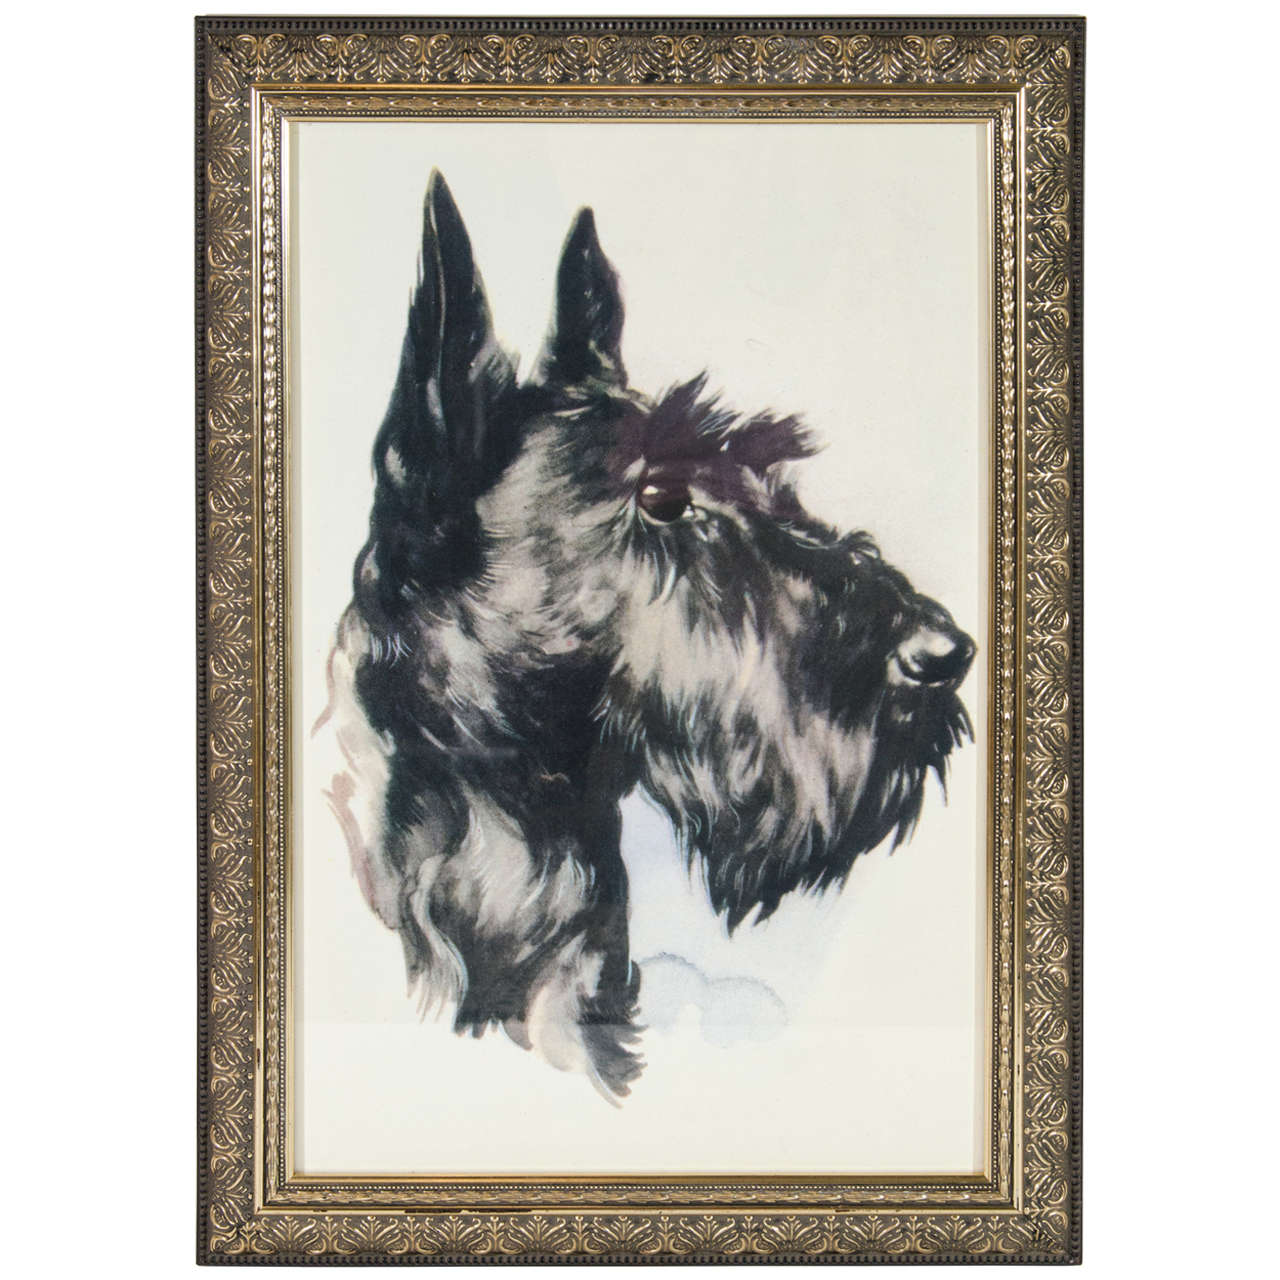 Vintage 'Portrait of Dog' Colored Lithograph on Paper  1